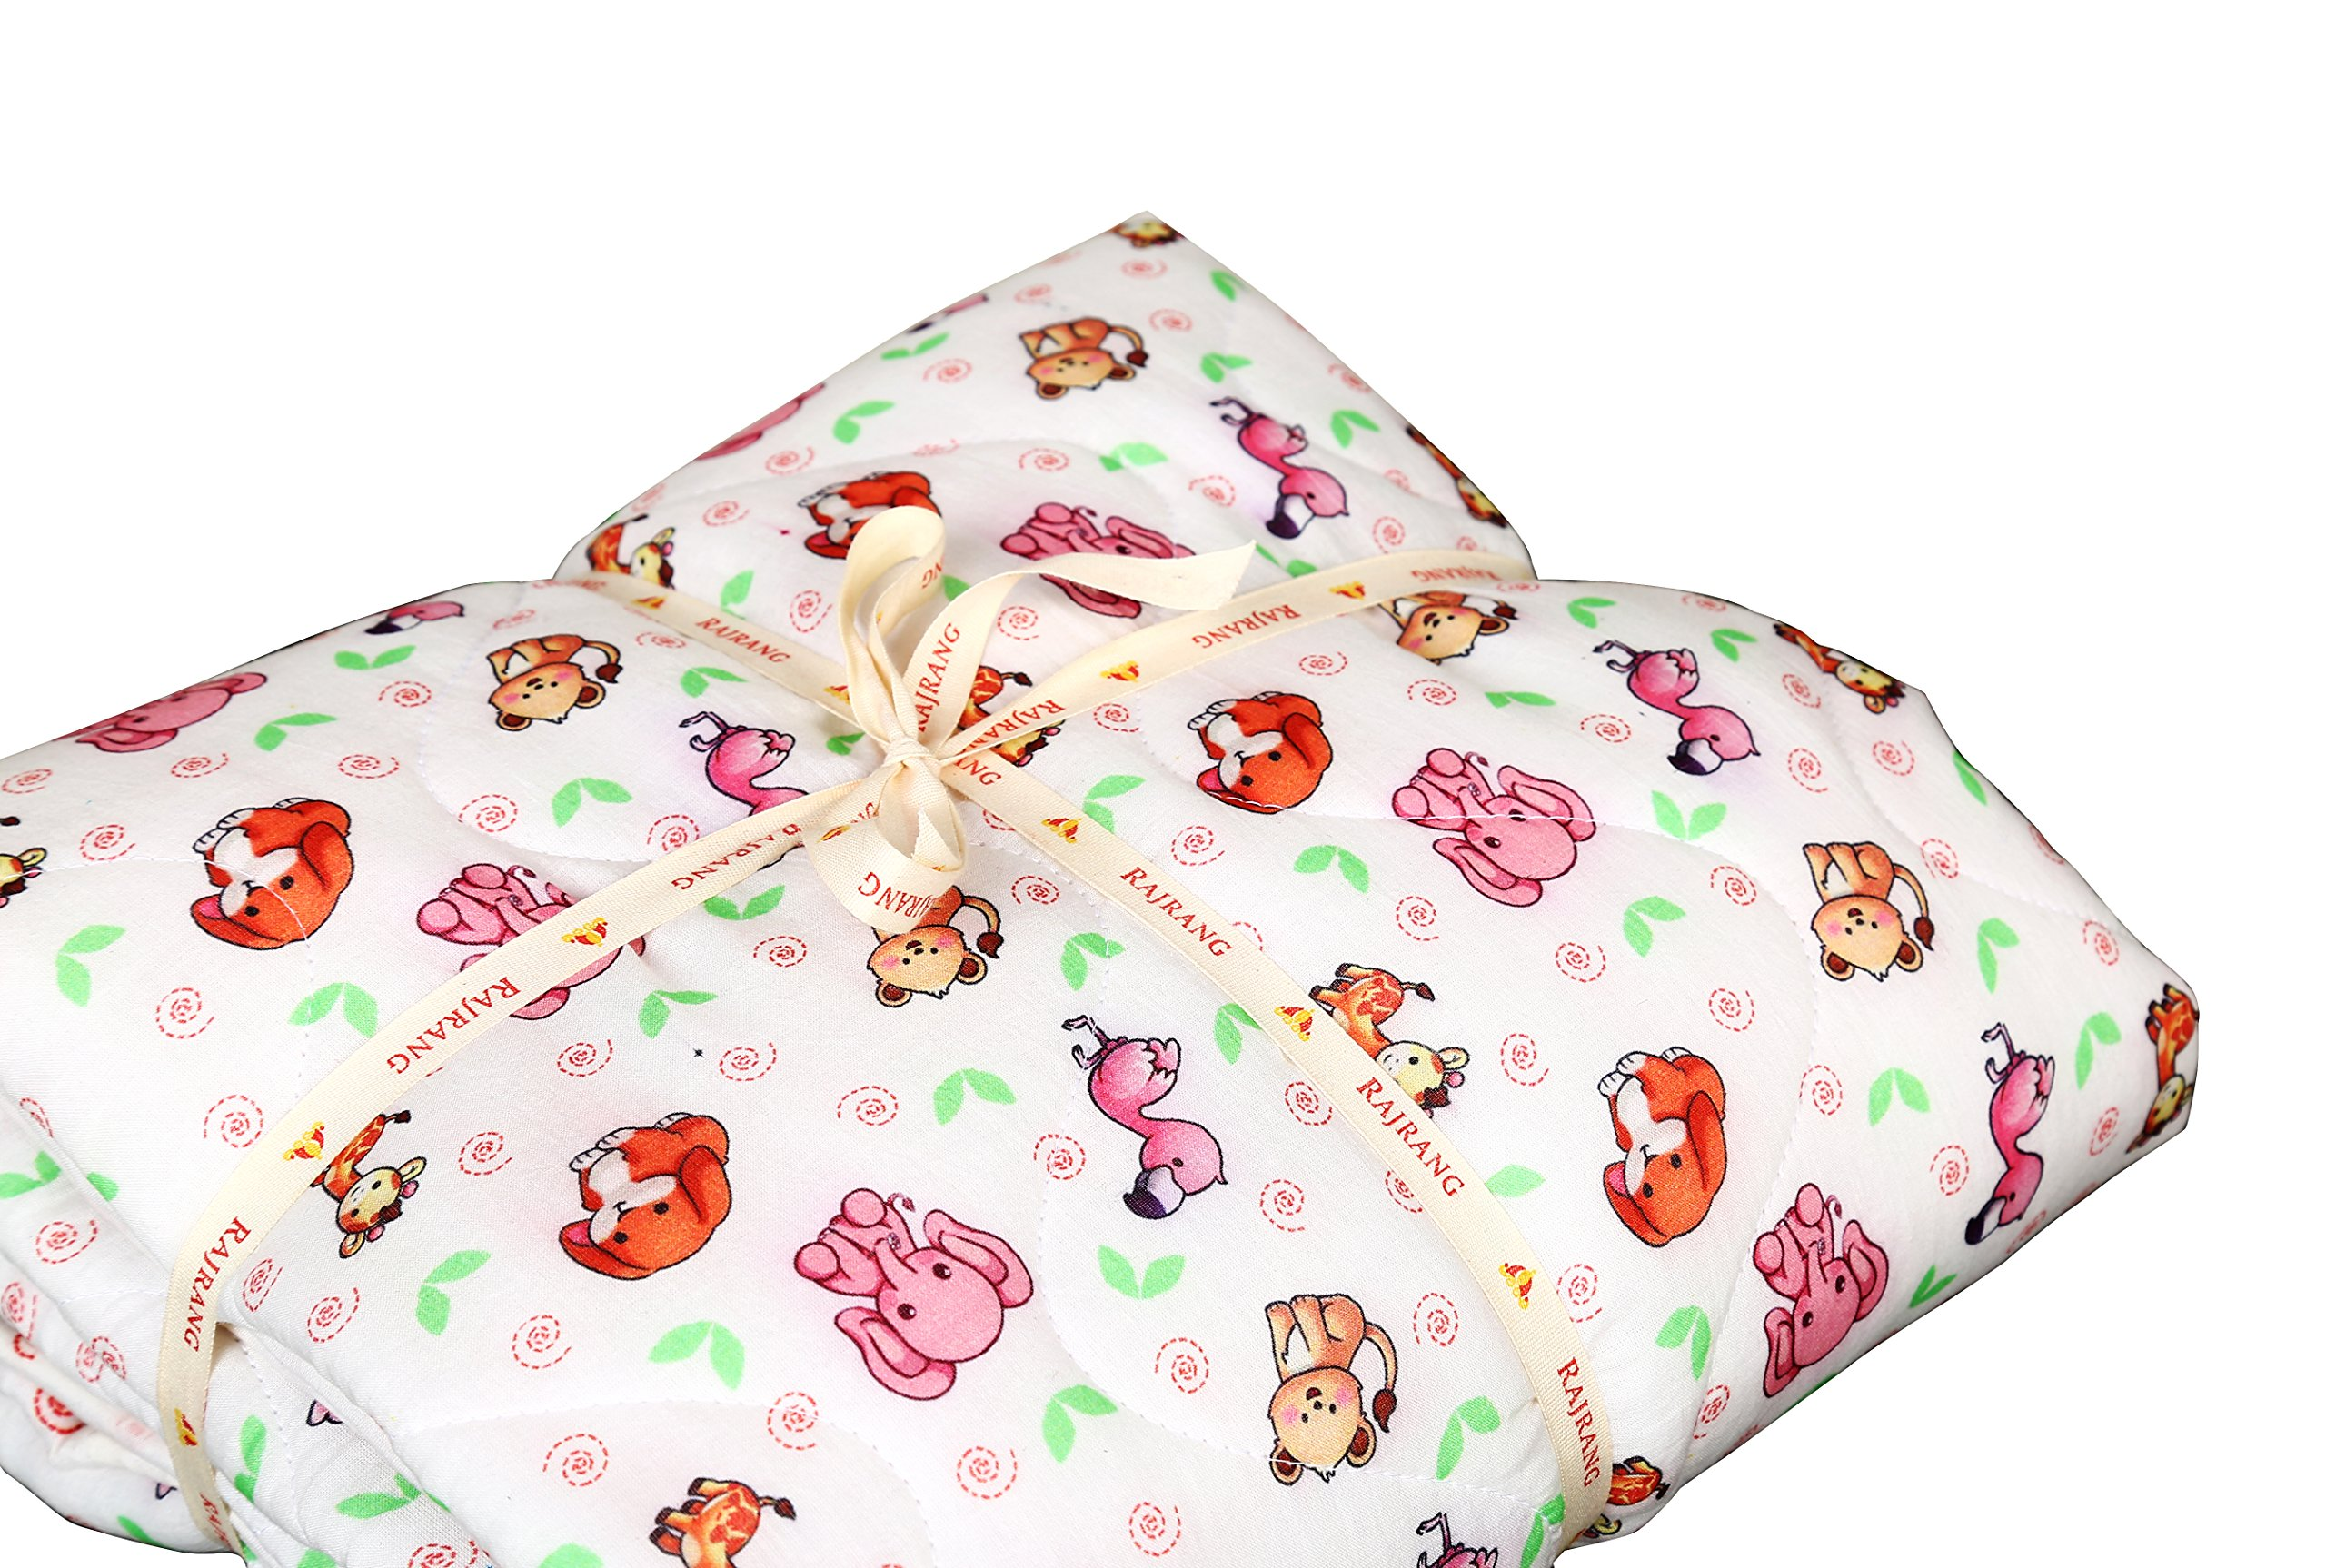 White and Pink Baby Quilt - Warm and Snuggly Toddler Blanket Animal Printed Crib Comforter for New Born Boys & Girls Bed Covers by RAJRANG (Image #7)